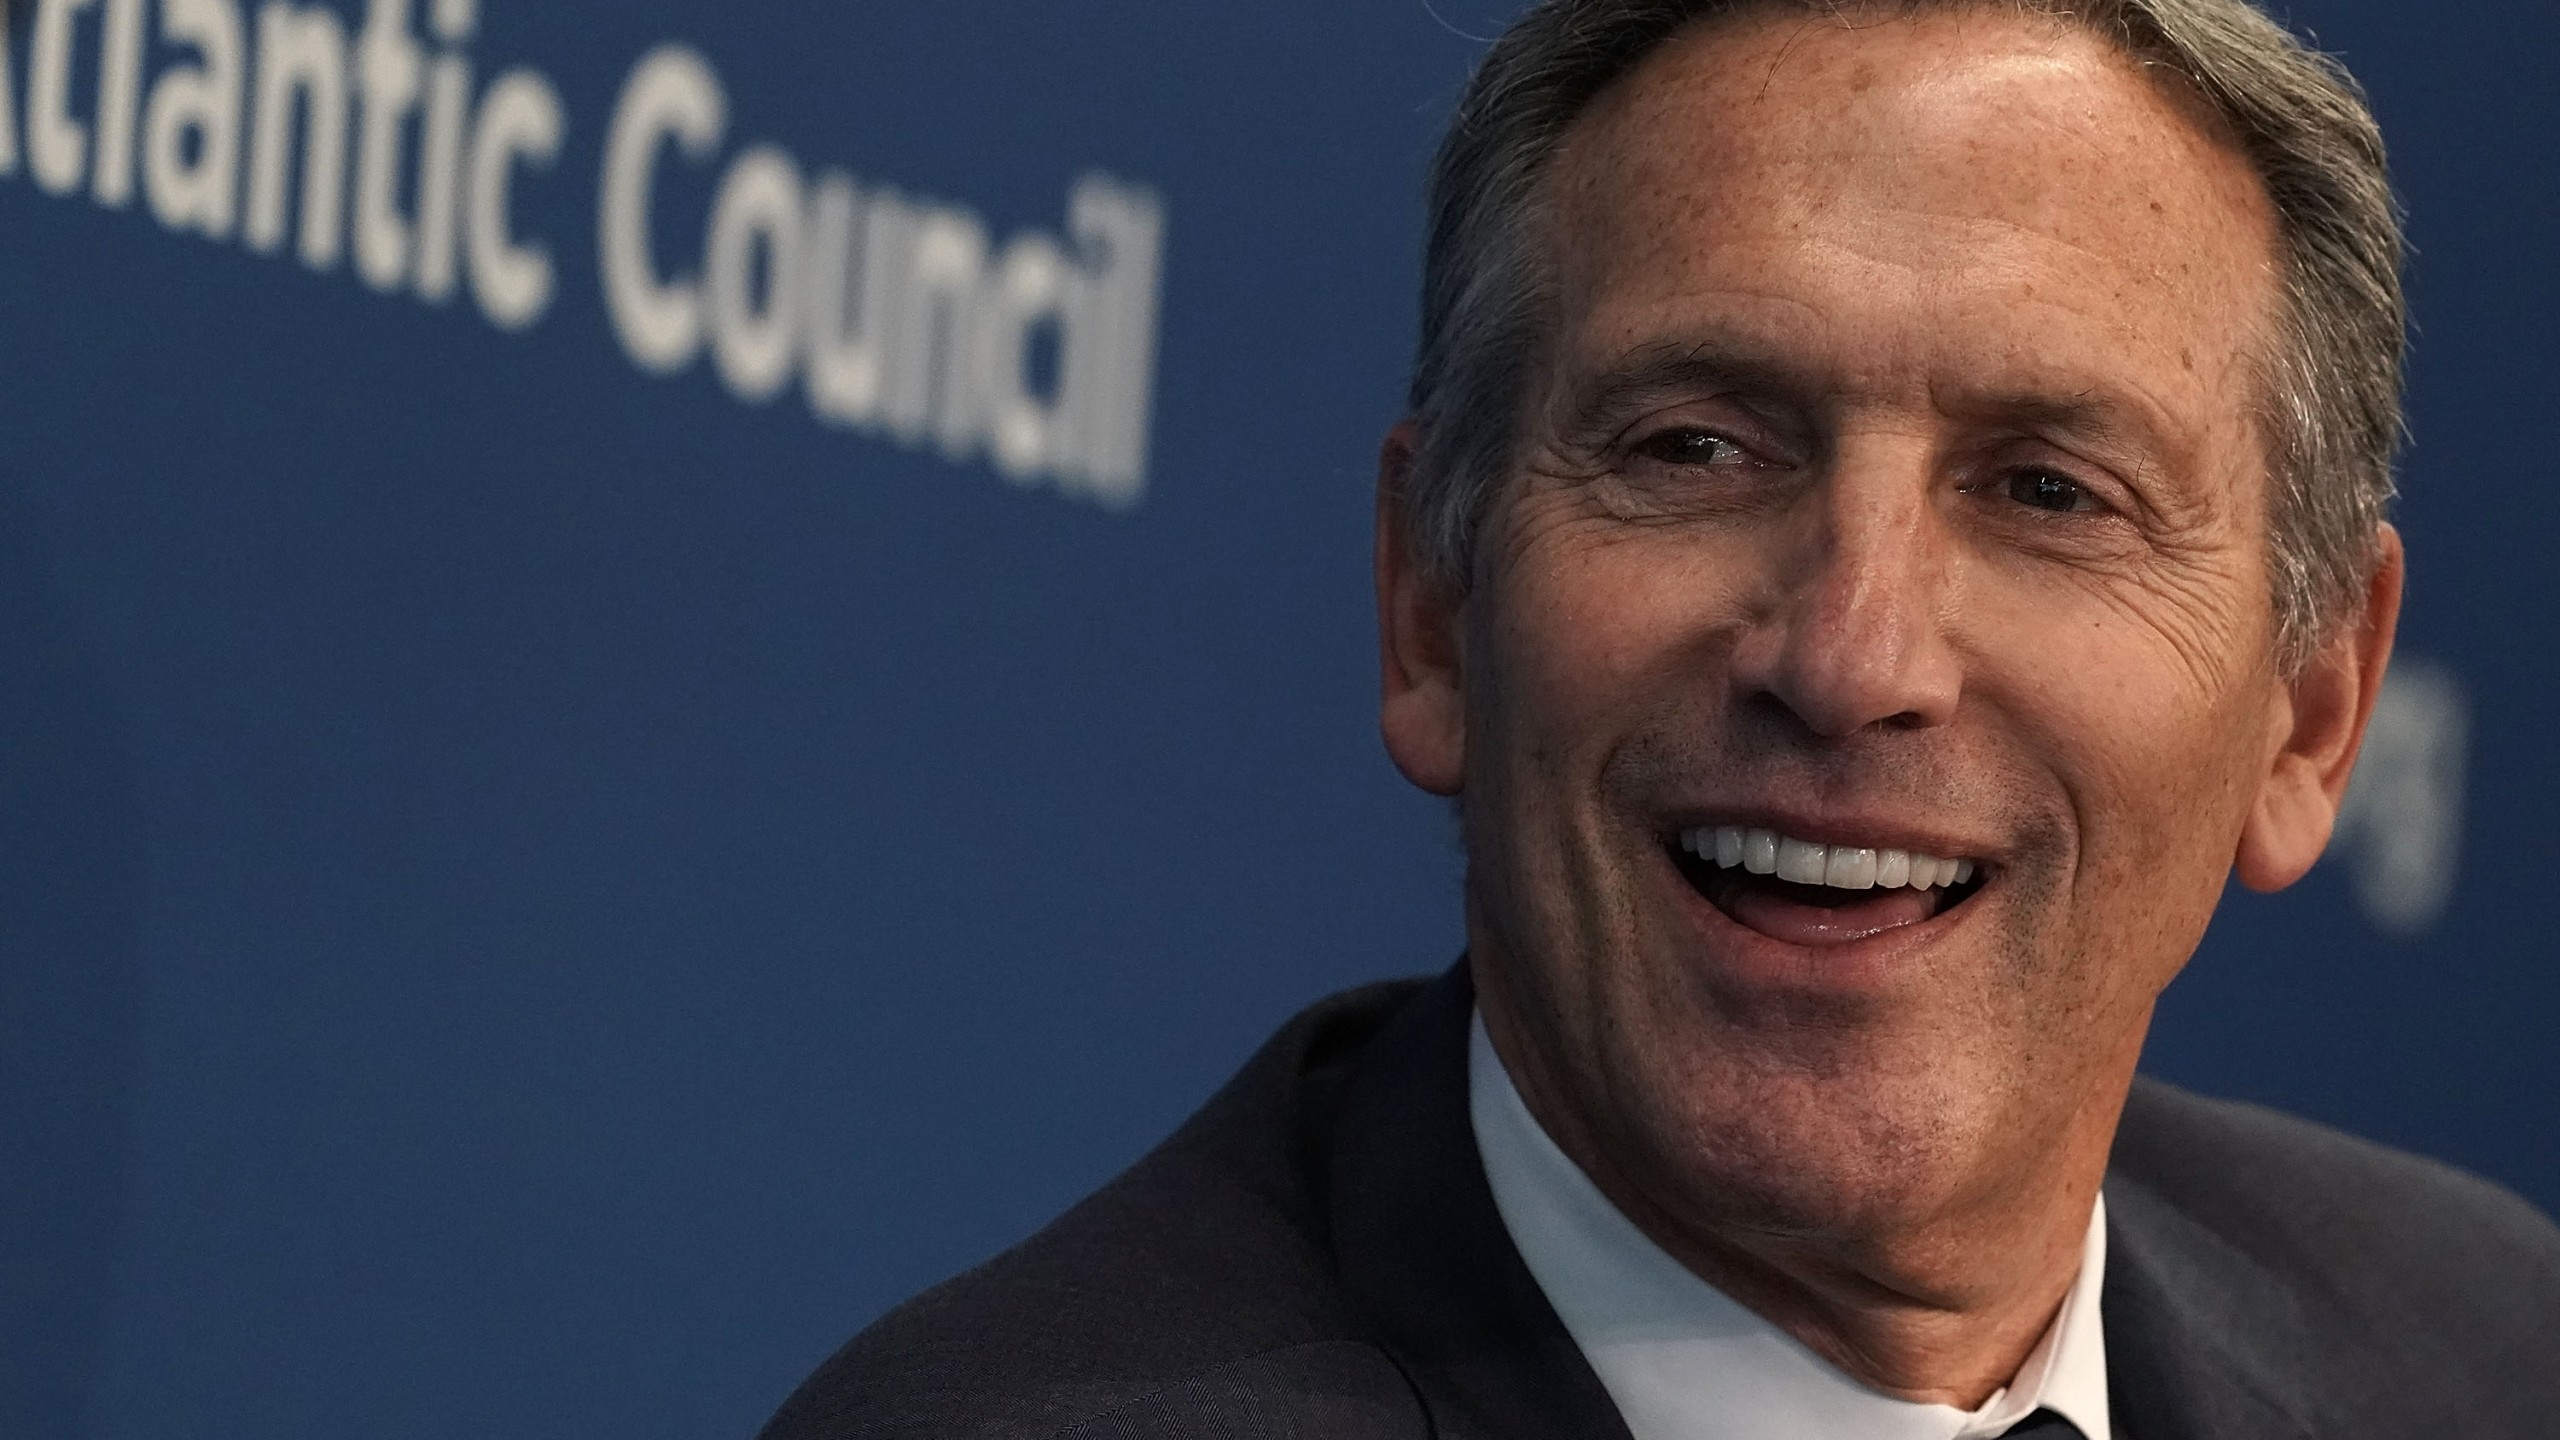 Former Executive Chairman of Starbucks Corporation Howard Schultz participates in a discussion at the Atlantic Council in Washington, D.C. on May 10, 2018. (Credit: Alex Wong/Getty Images)